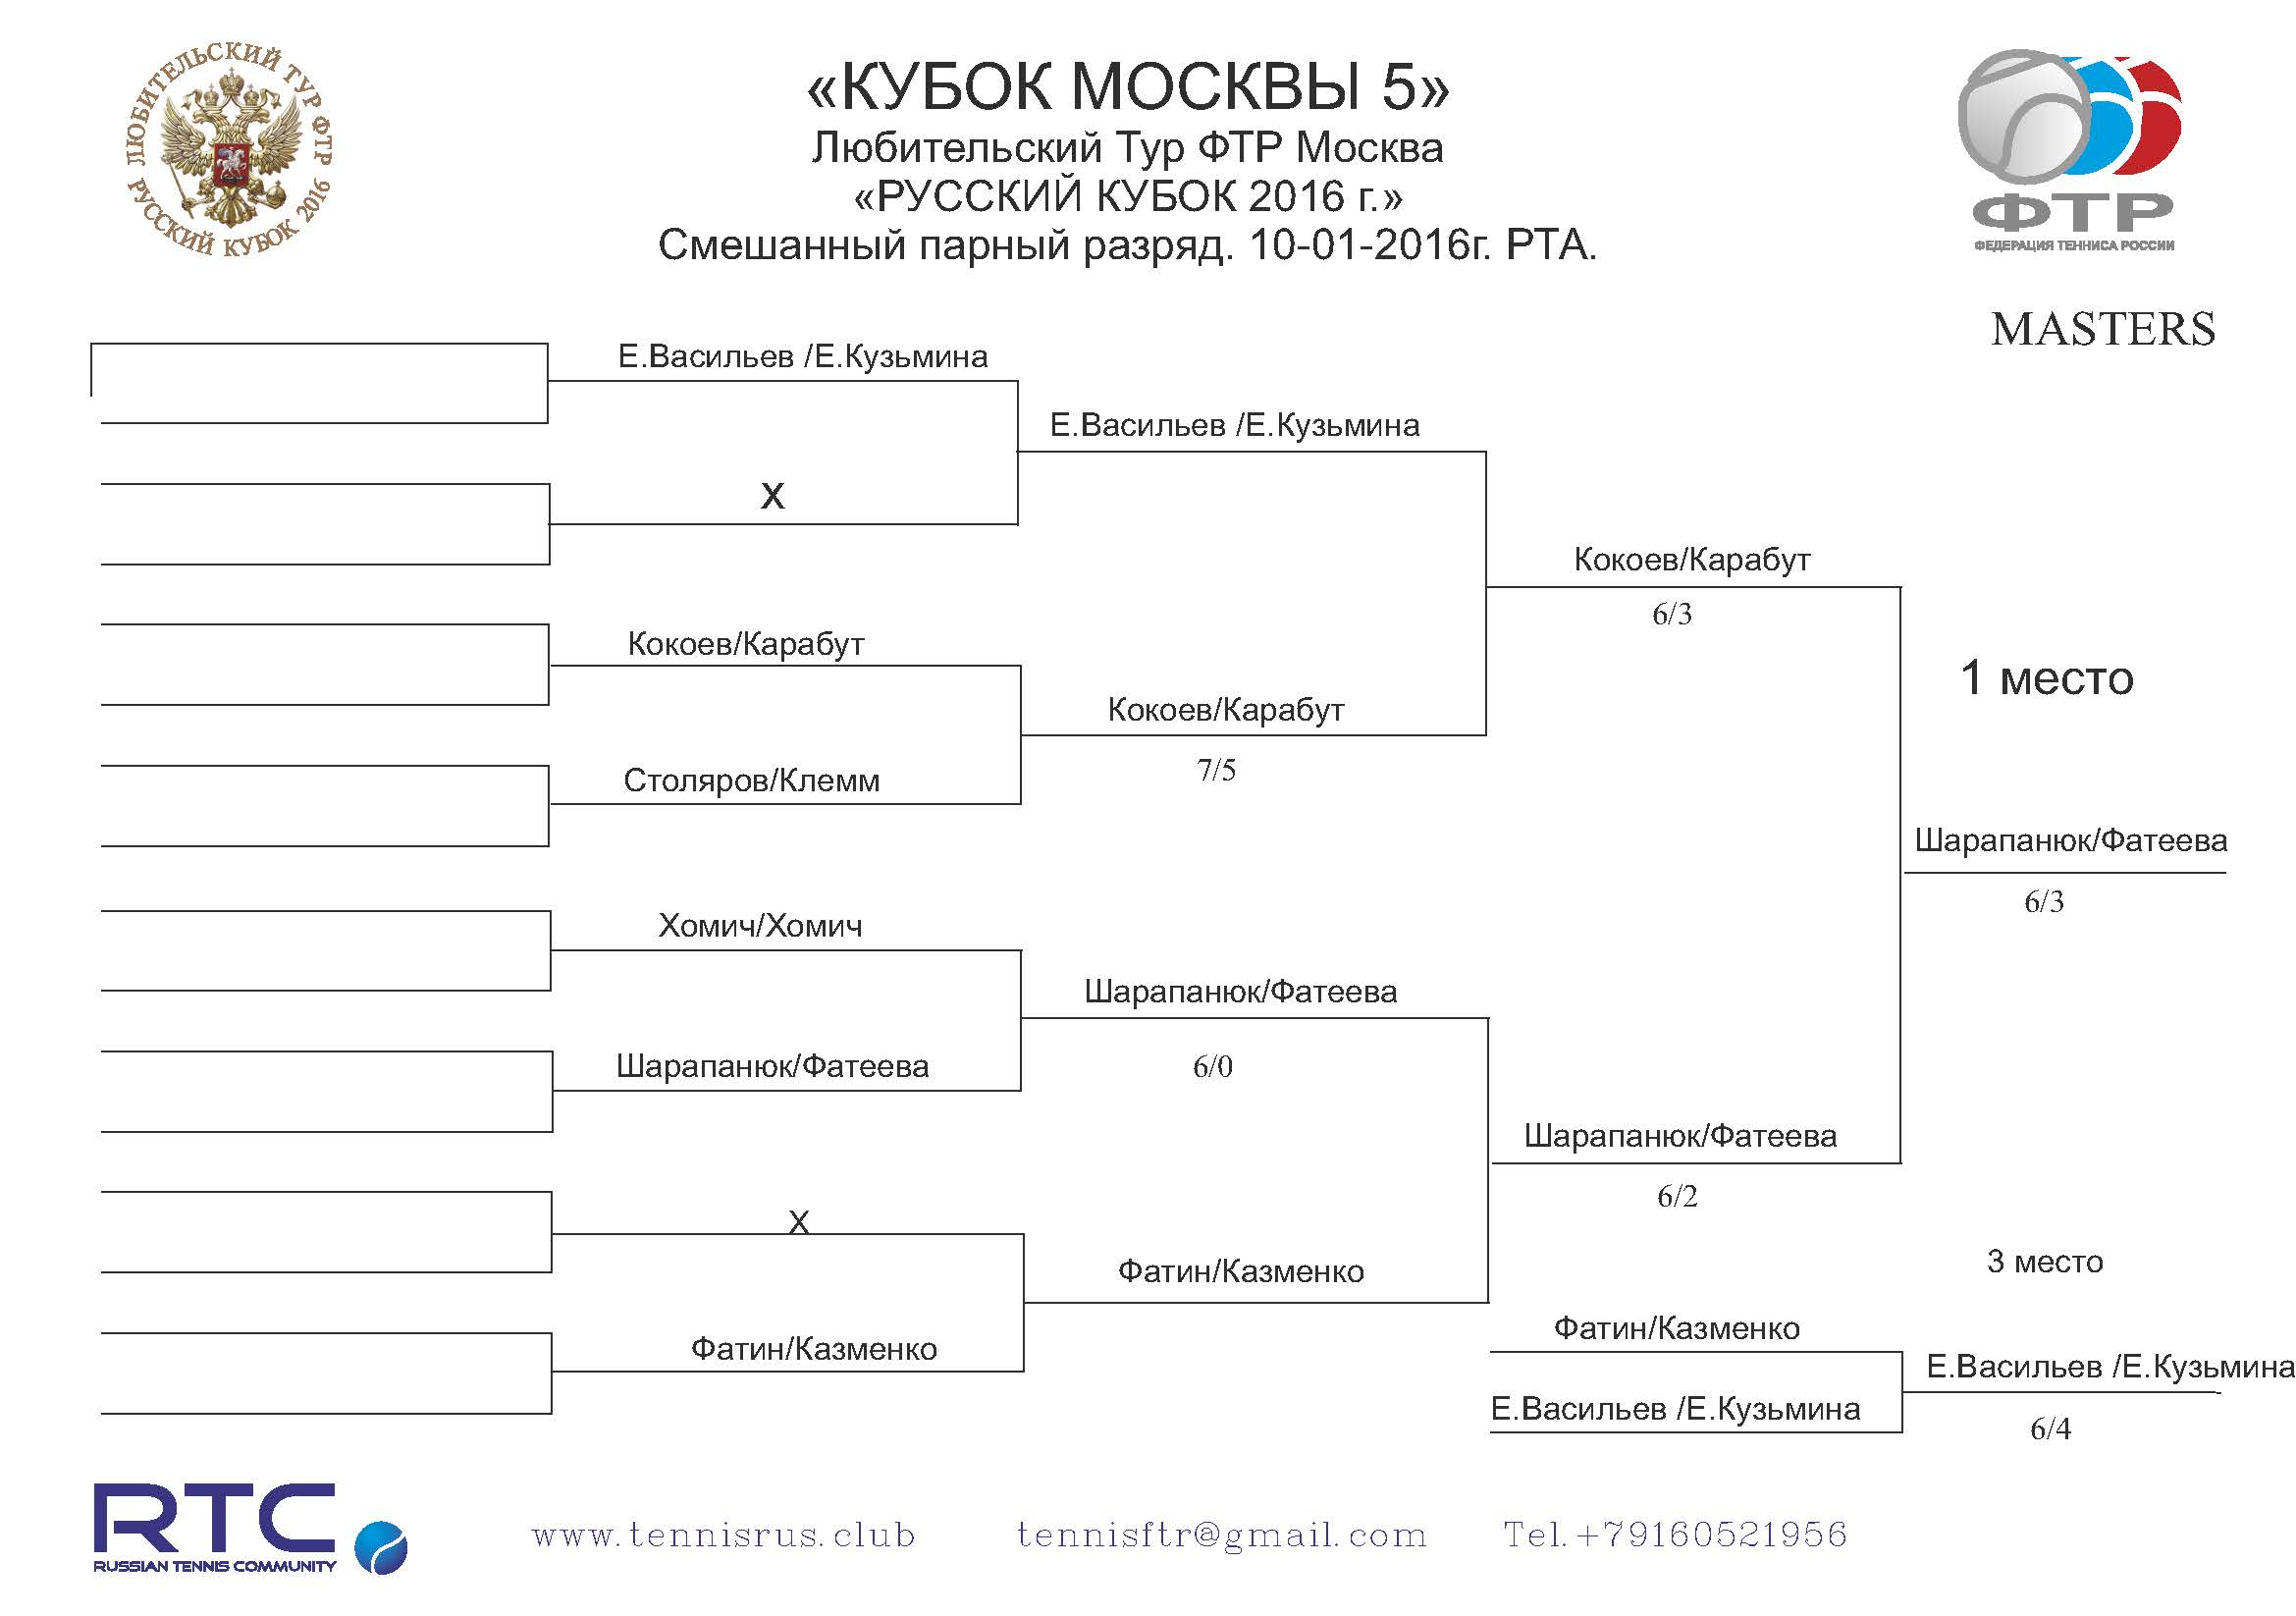 Moscow Cup 5 Masters NET main